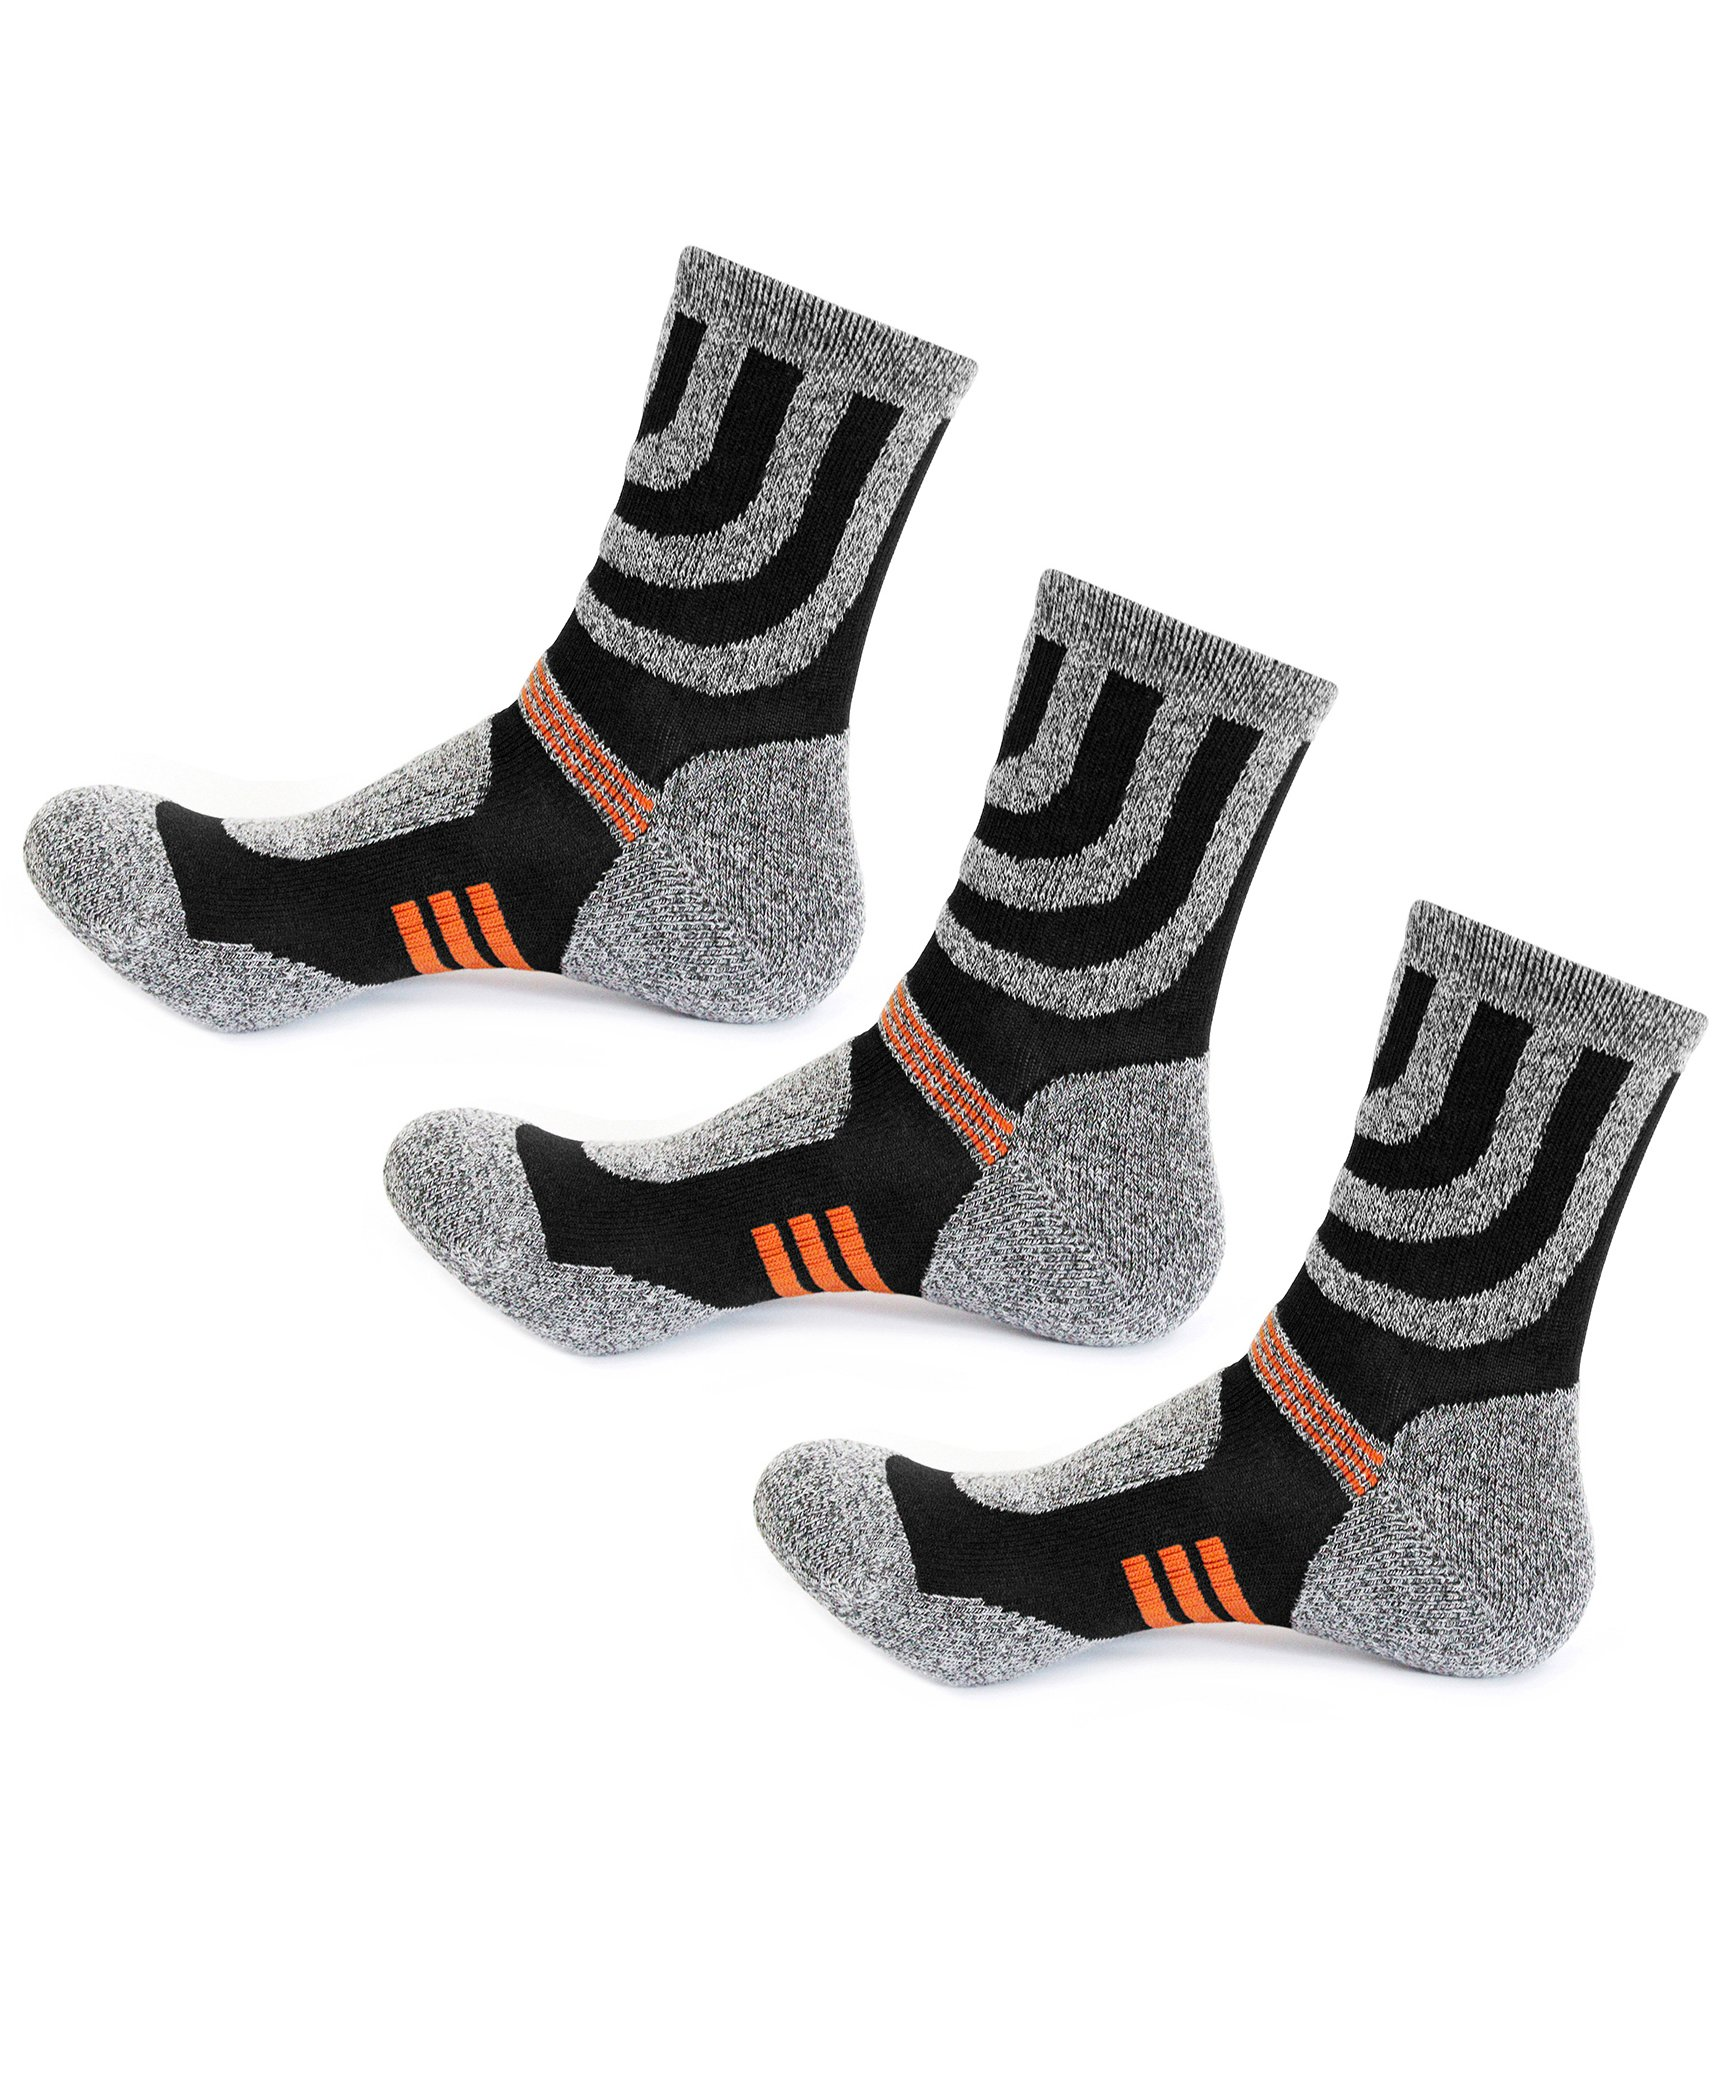 3 Pairs Men Women Hiking Socks-Outdoor Running Walking Camping,US Size 4-8,Grey